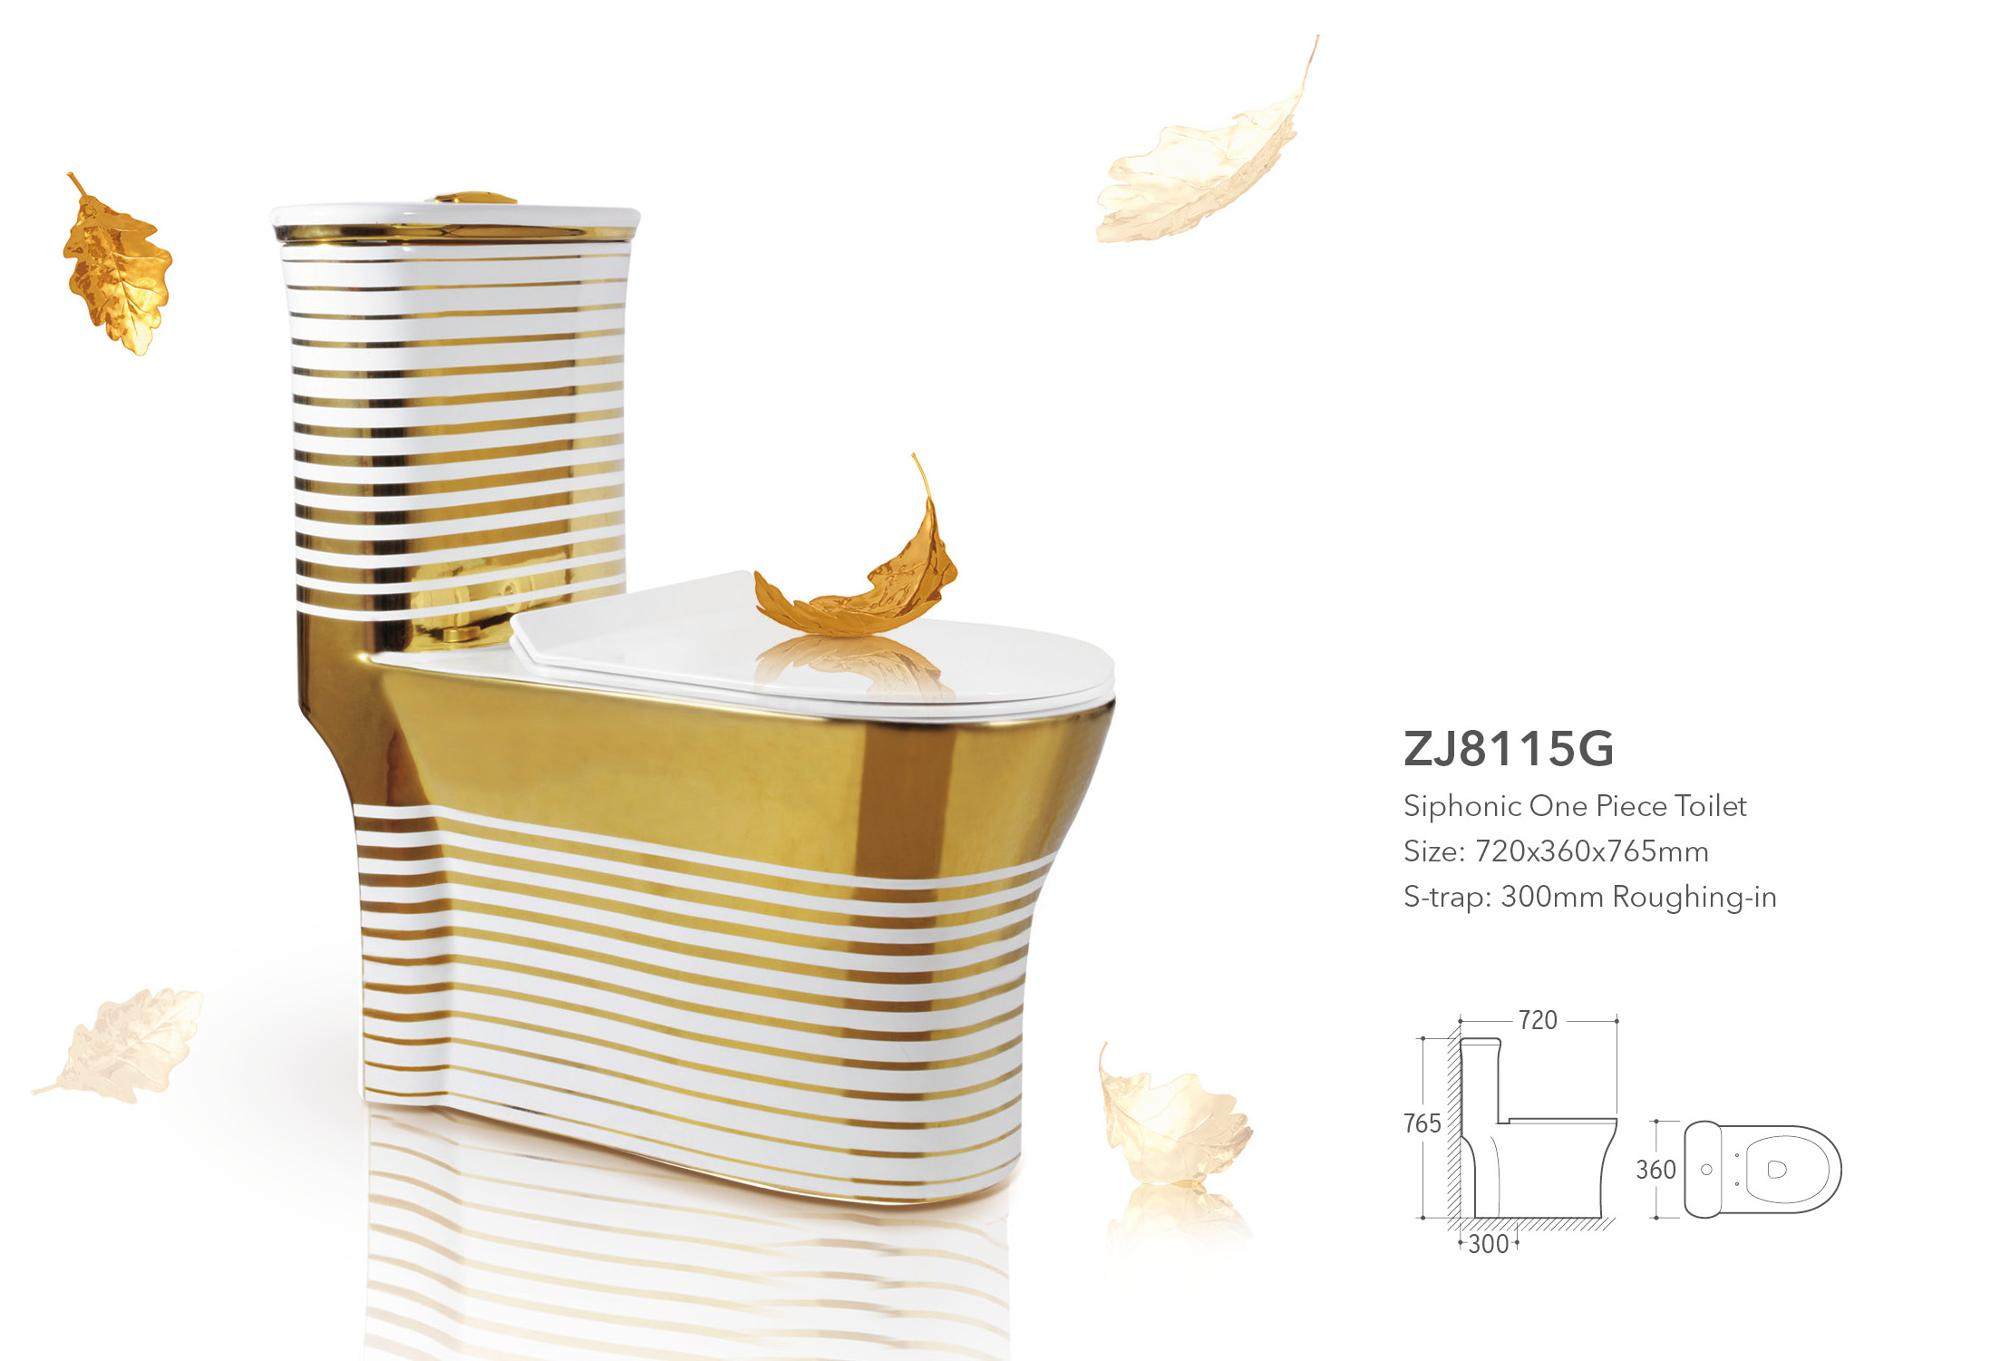 ZJ8115G hot sale Chaozhou bathroom sanitary ware Middle East gold color washdown one piece china ceramic